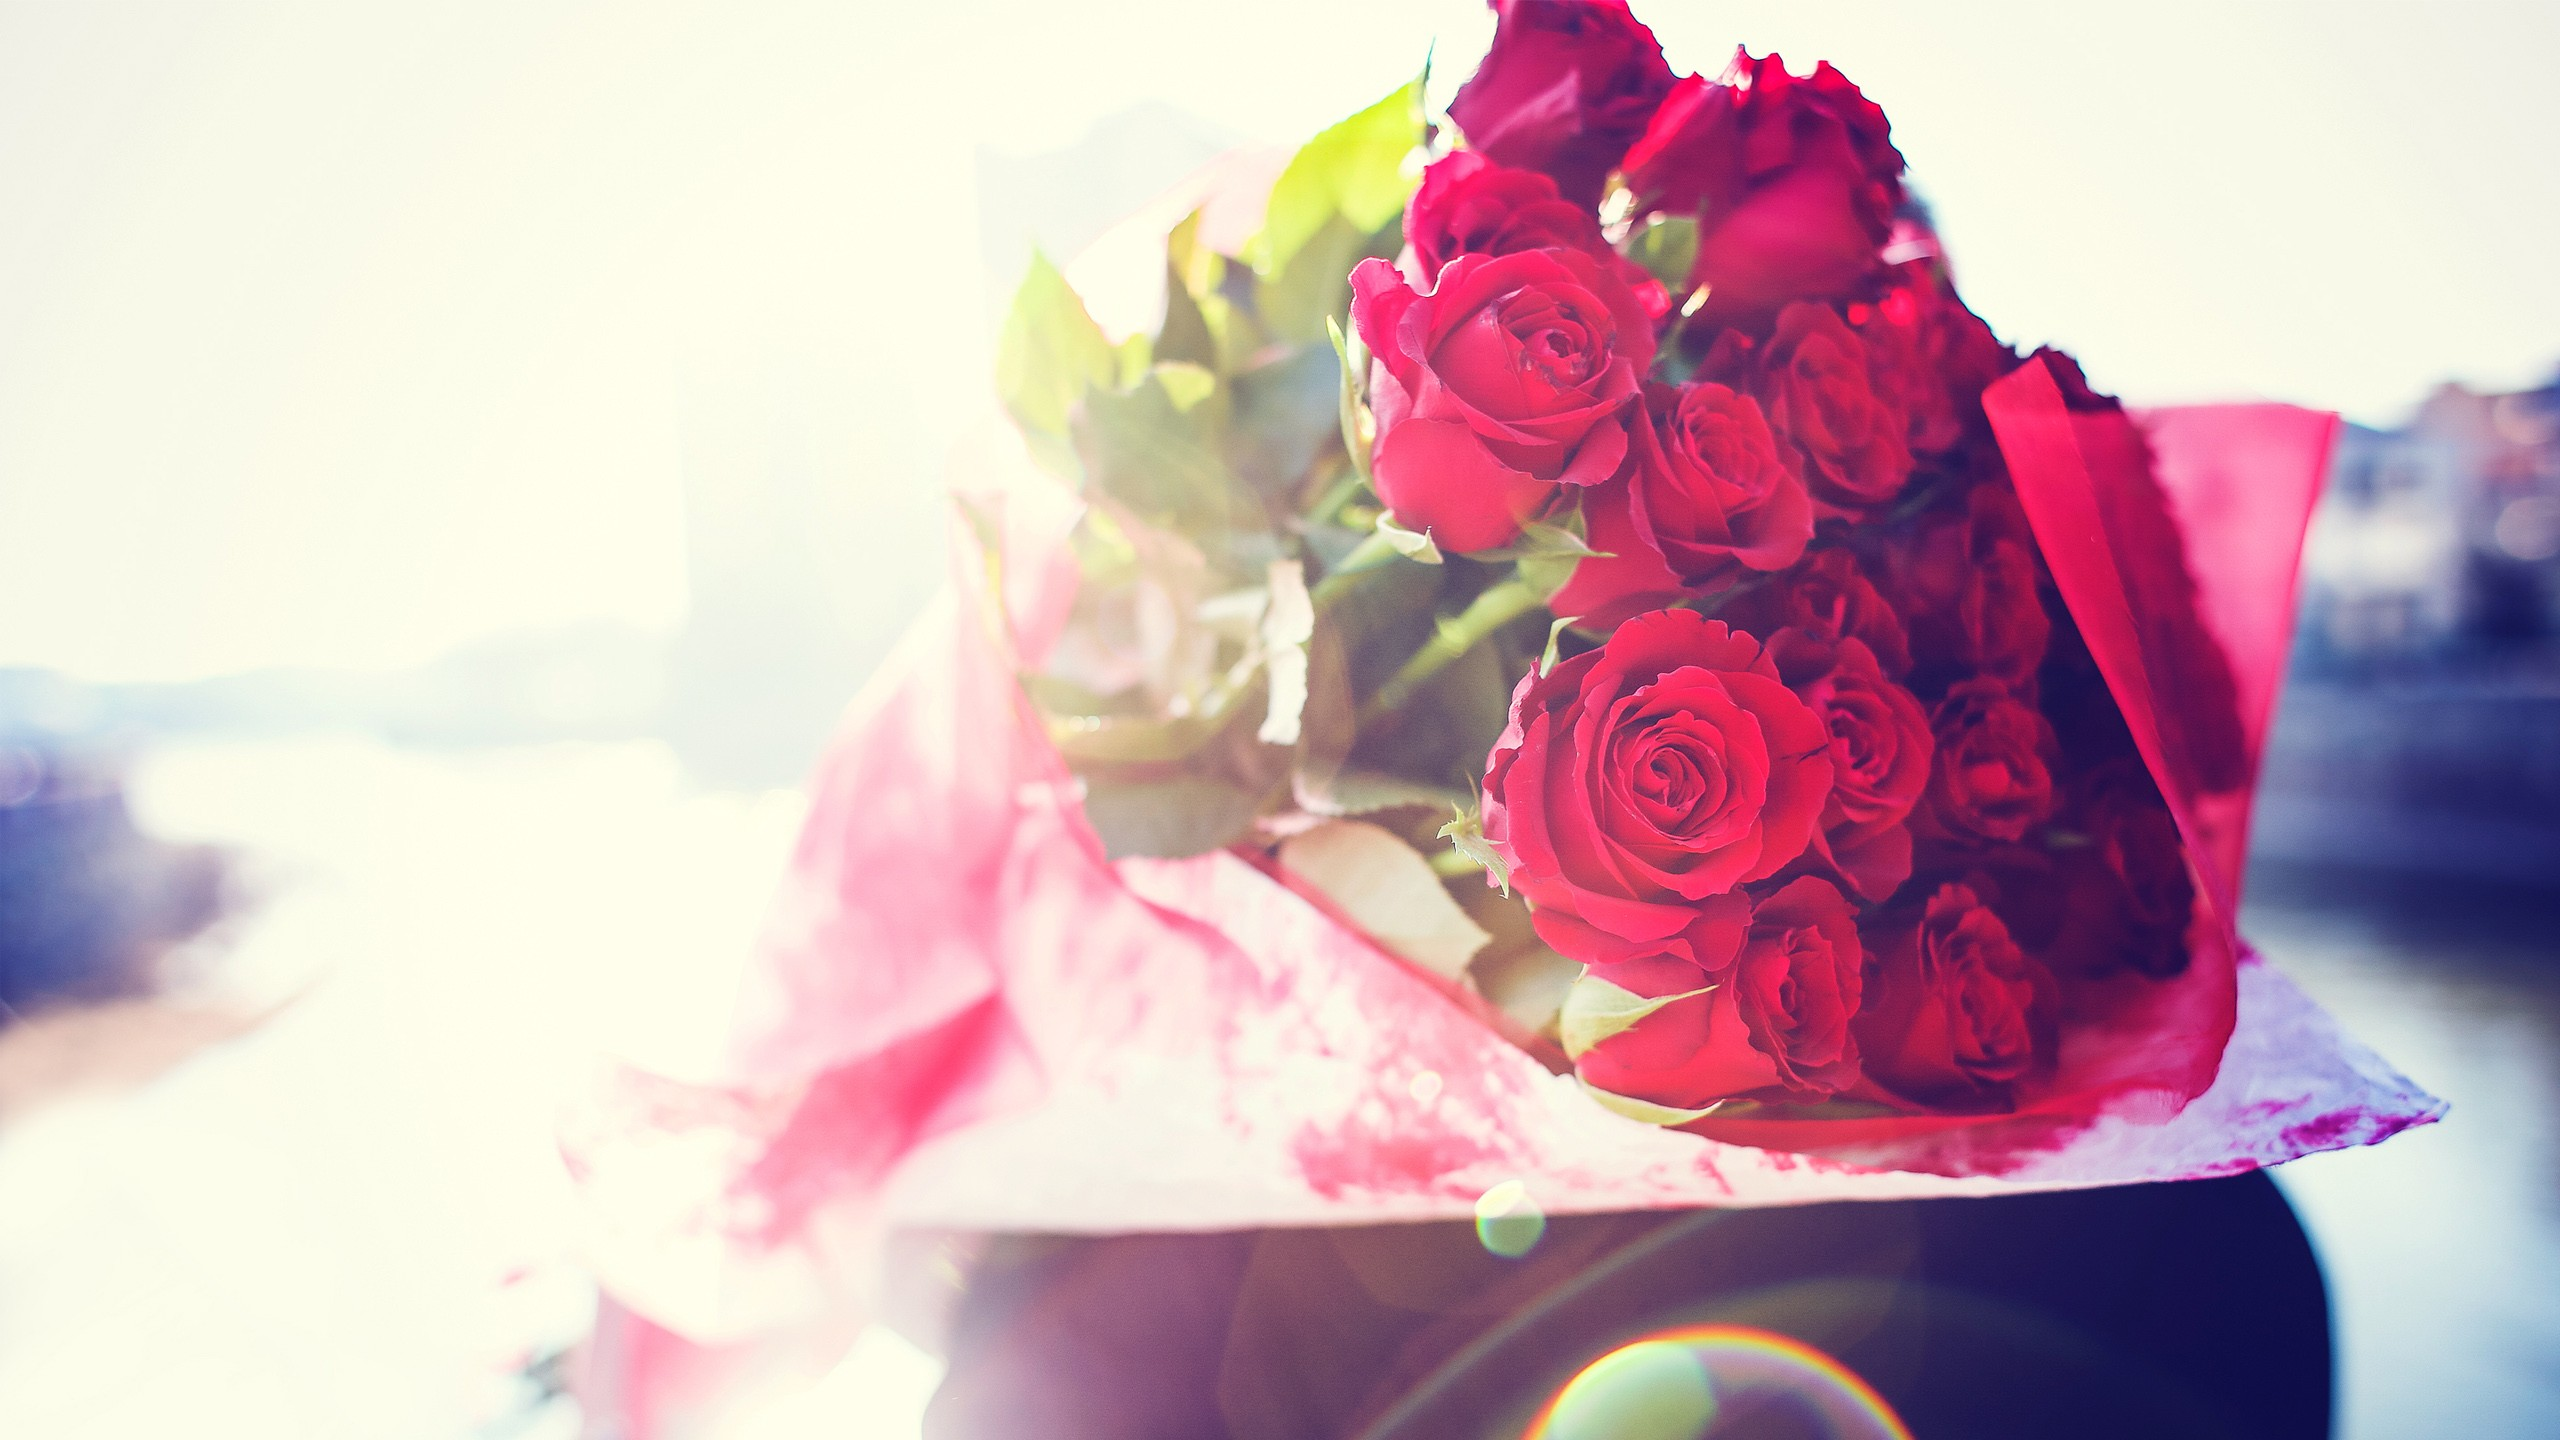 Cute Home Screen Wallpaper For Iphone Roses Bouquet Wallpapers Hd Wallpapers Id 16533